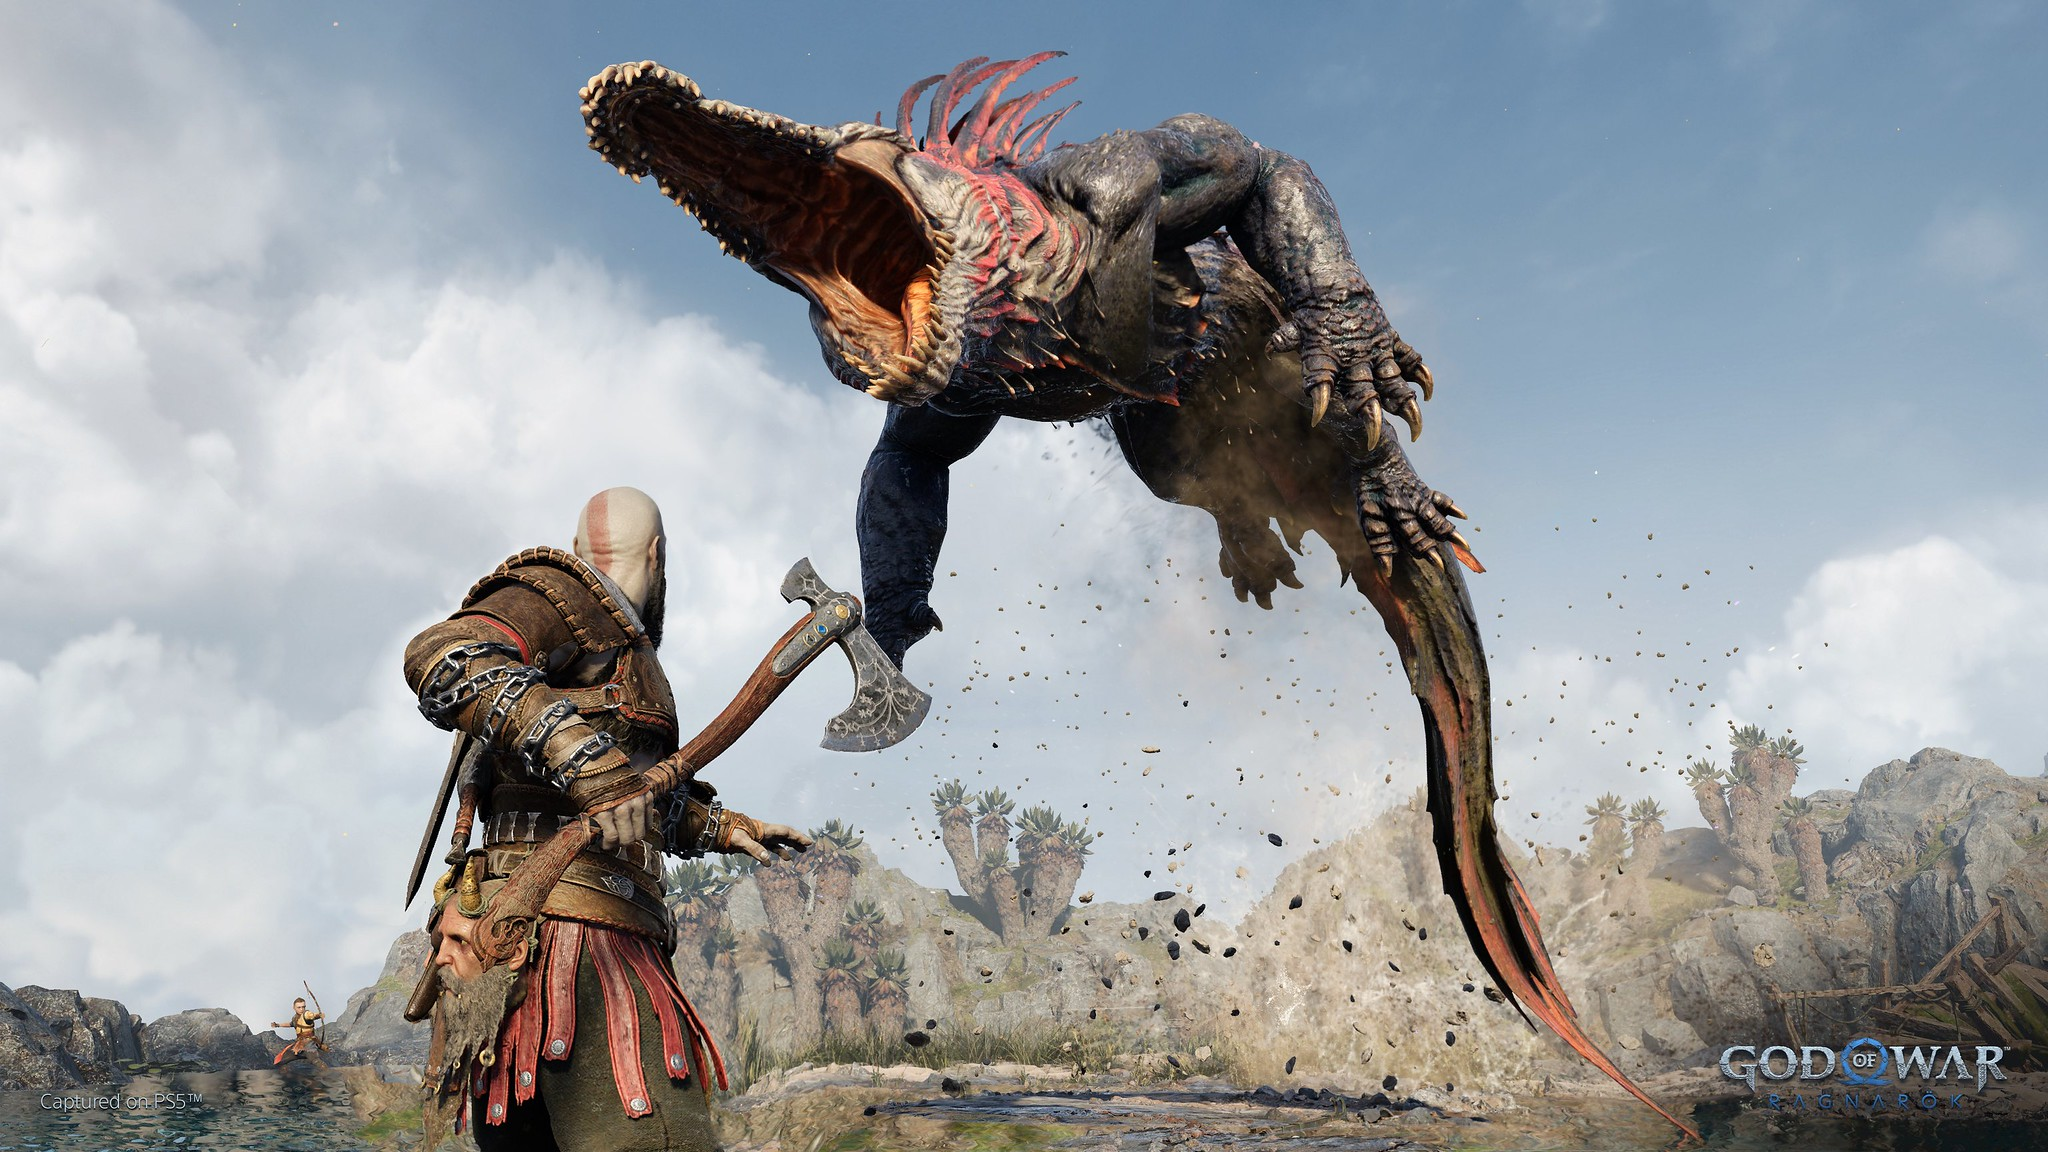 a creature that looks like an alligator attacking Kratos from the air in God of War Ragnarok